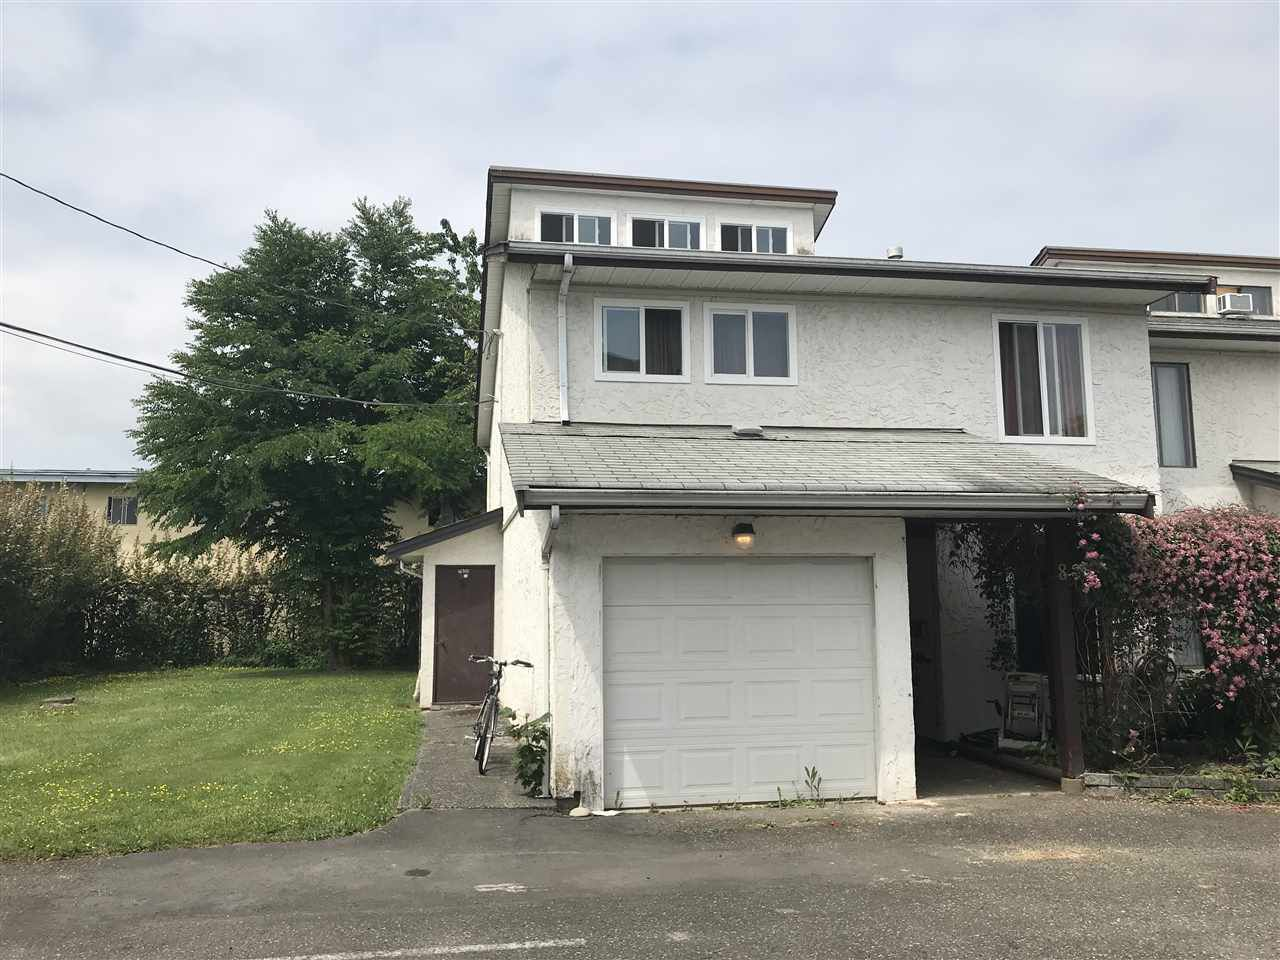 Main Photo: 8 9251 HAZEL Street in Chilliwack: Chilliwack E Young-Yale Townhouse for sale : MLS®# R2375202